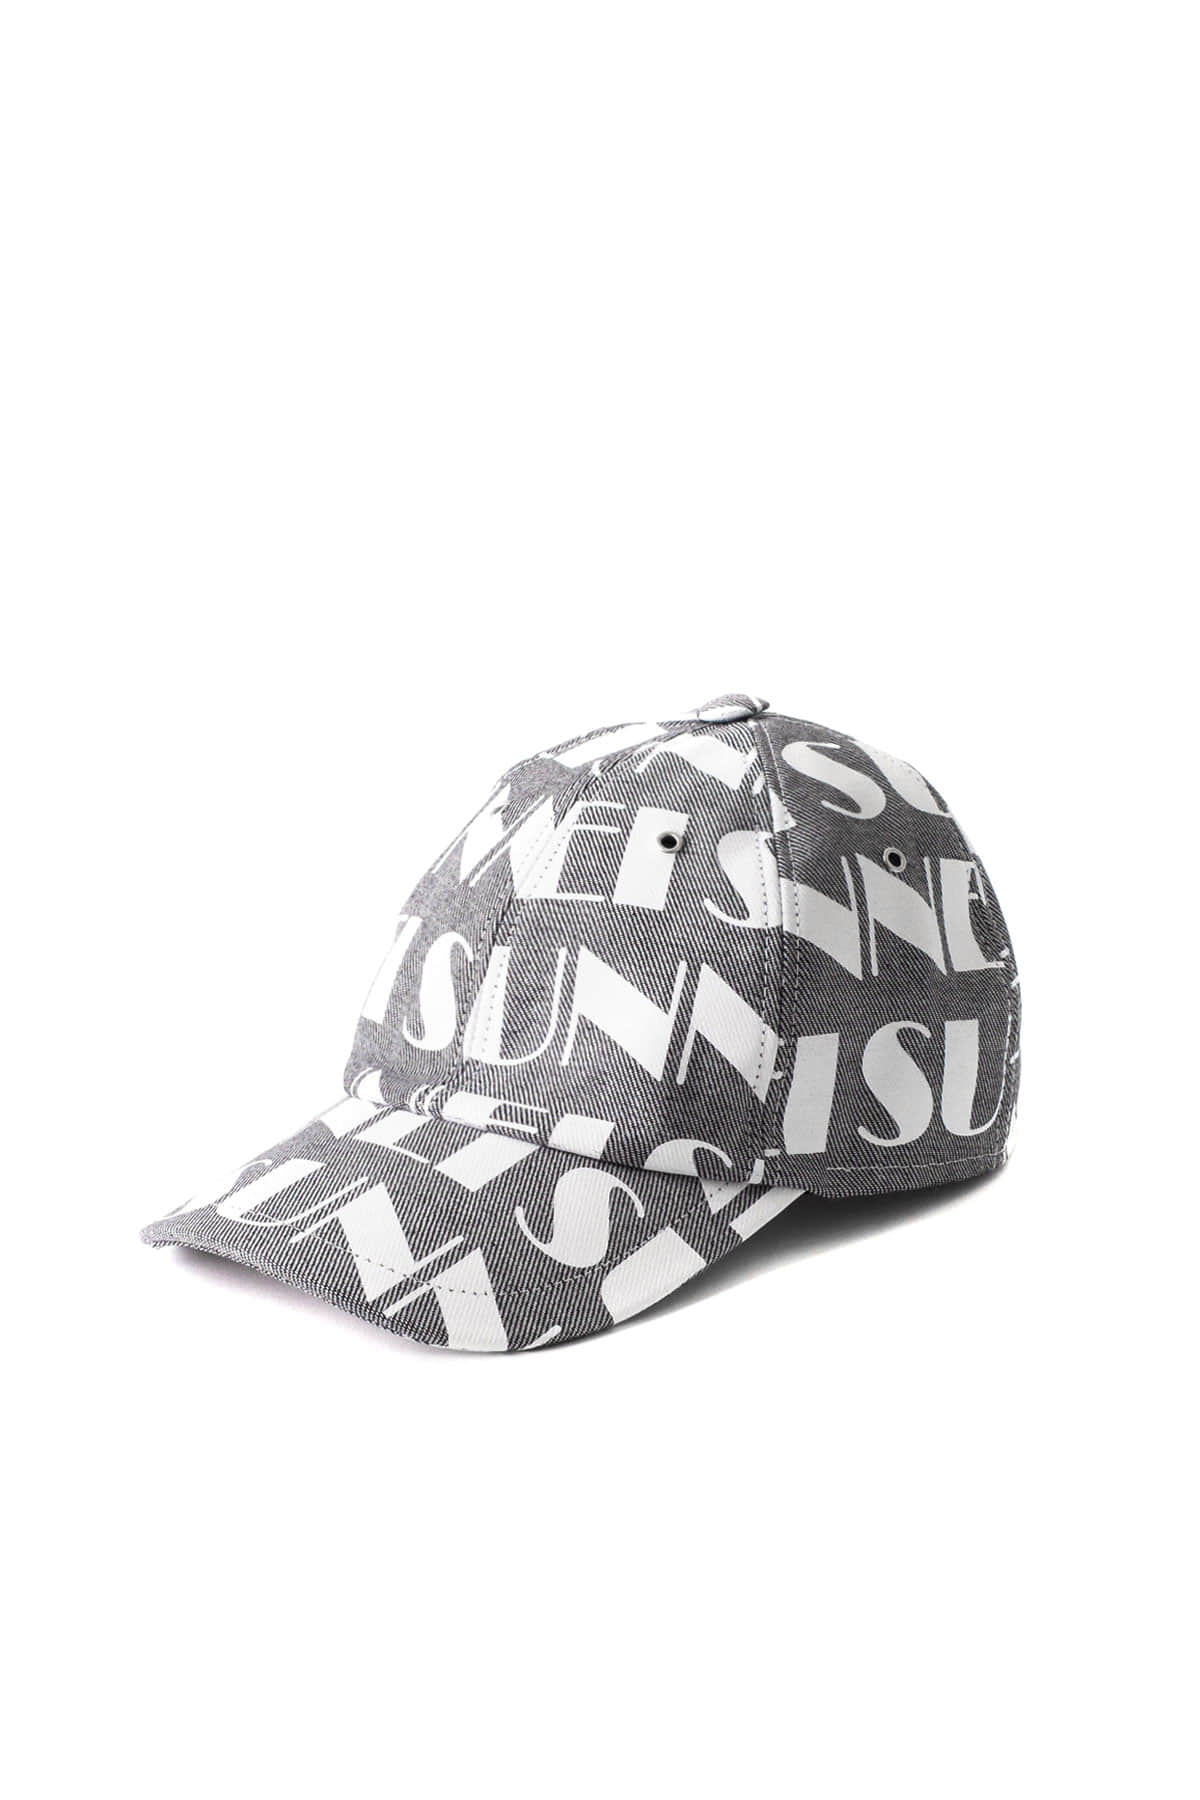 SUNNEI : Baseball Cap (Allover)